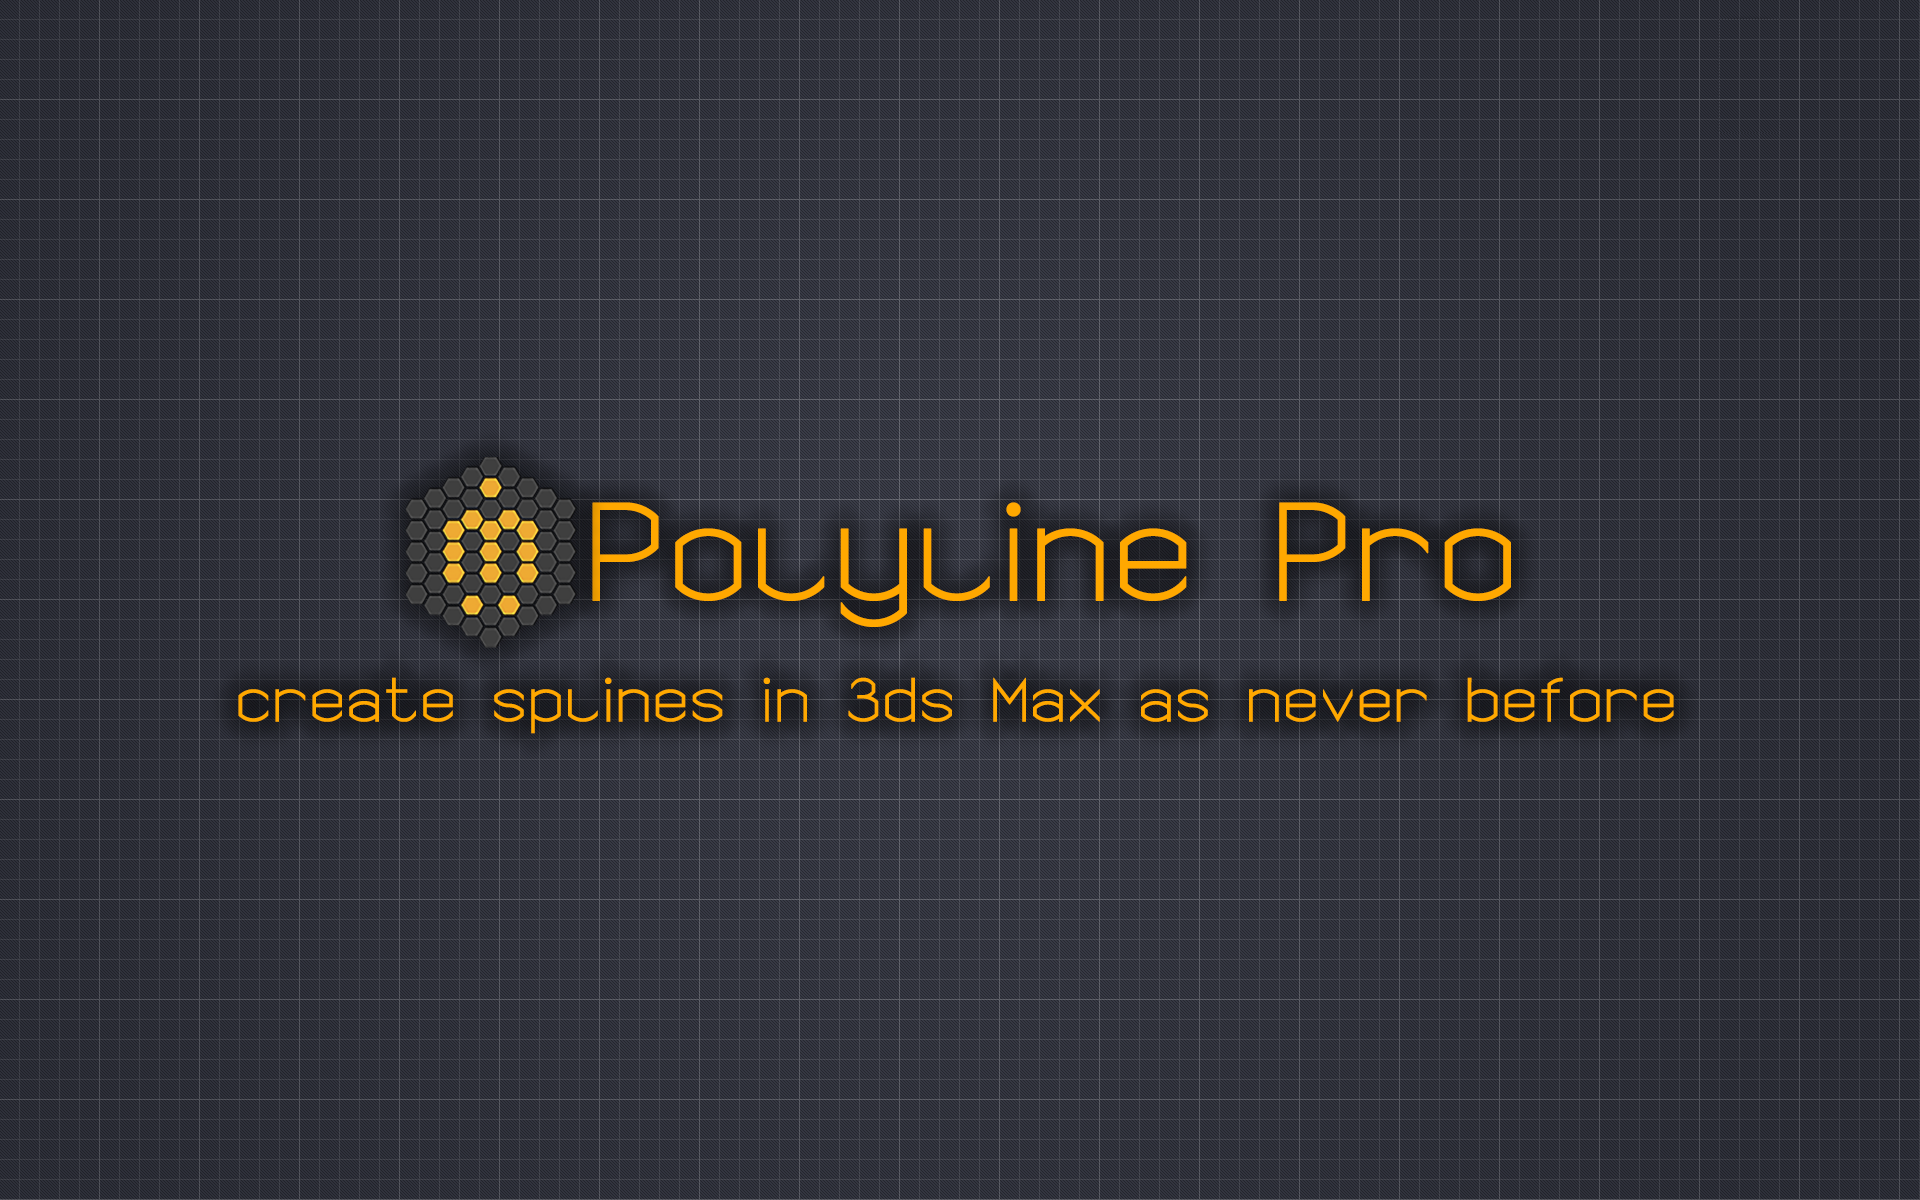 Polyline Pro Create splines in 3ds Max as never before